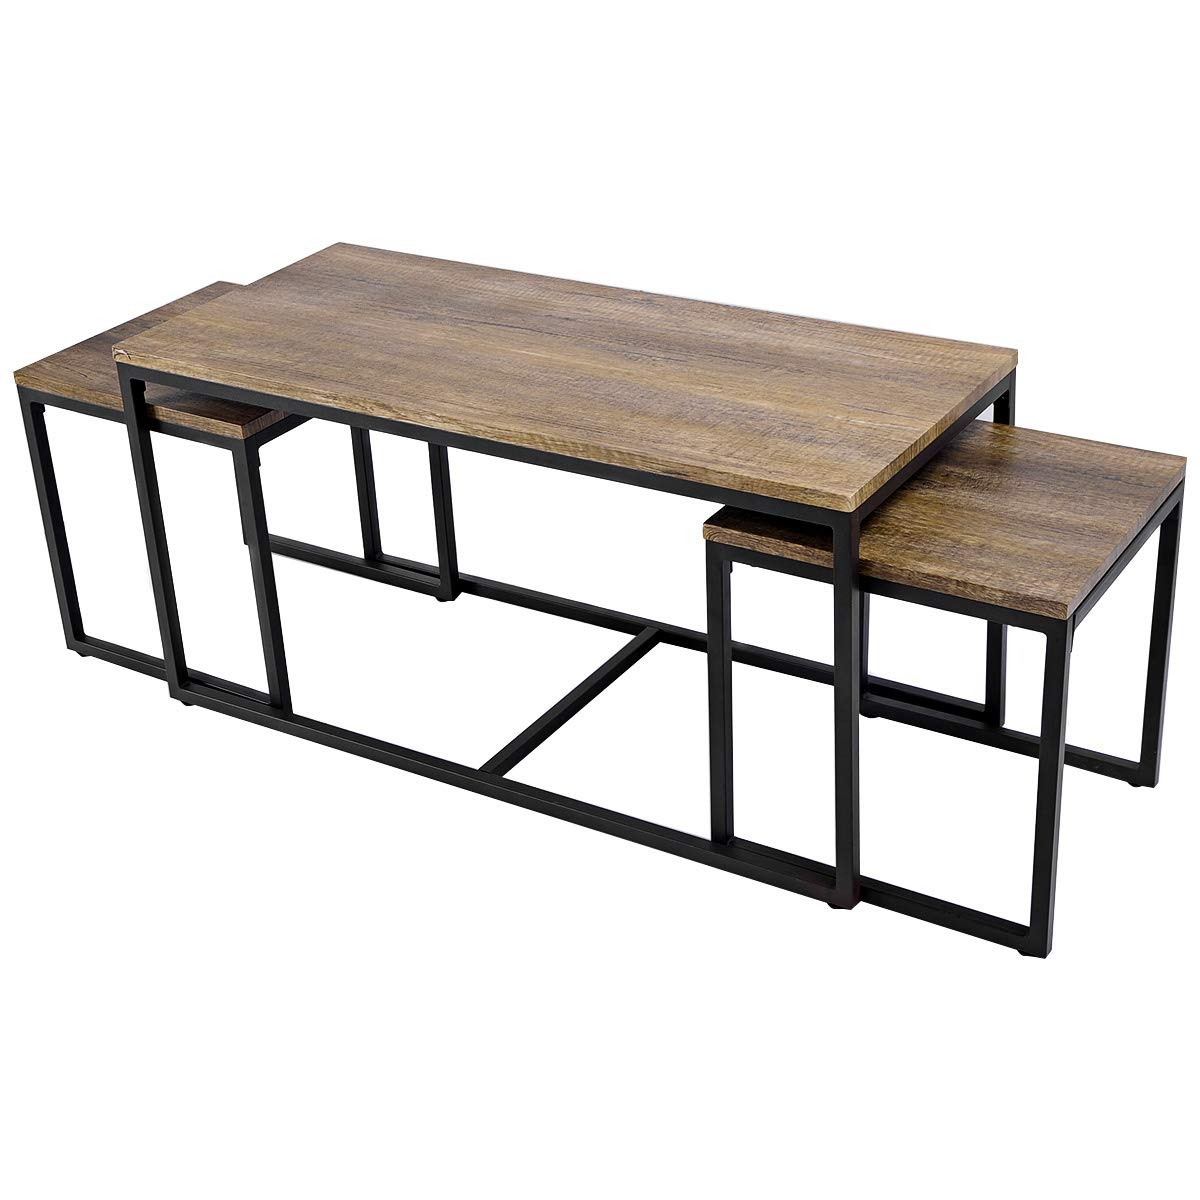 3 Pieces Wood Coffee End Table Set